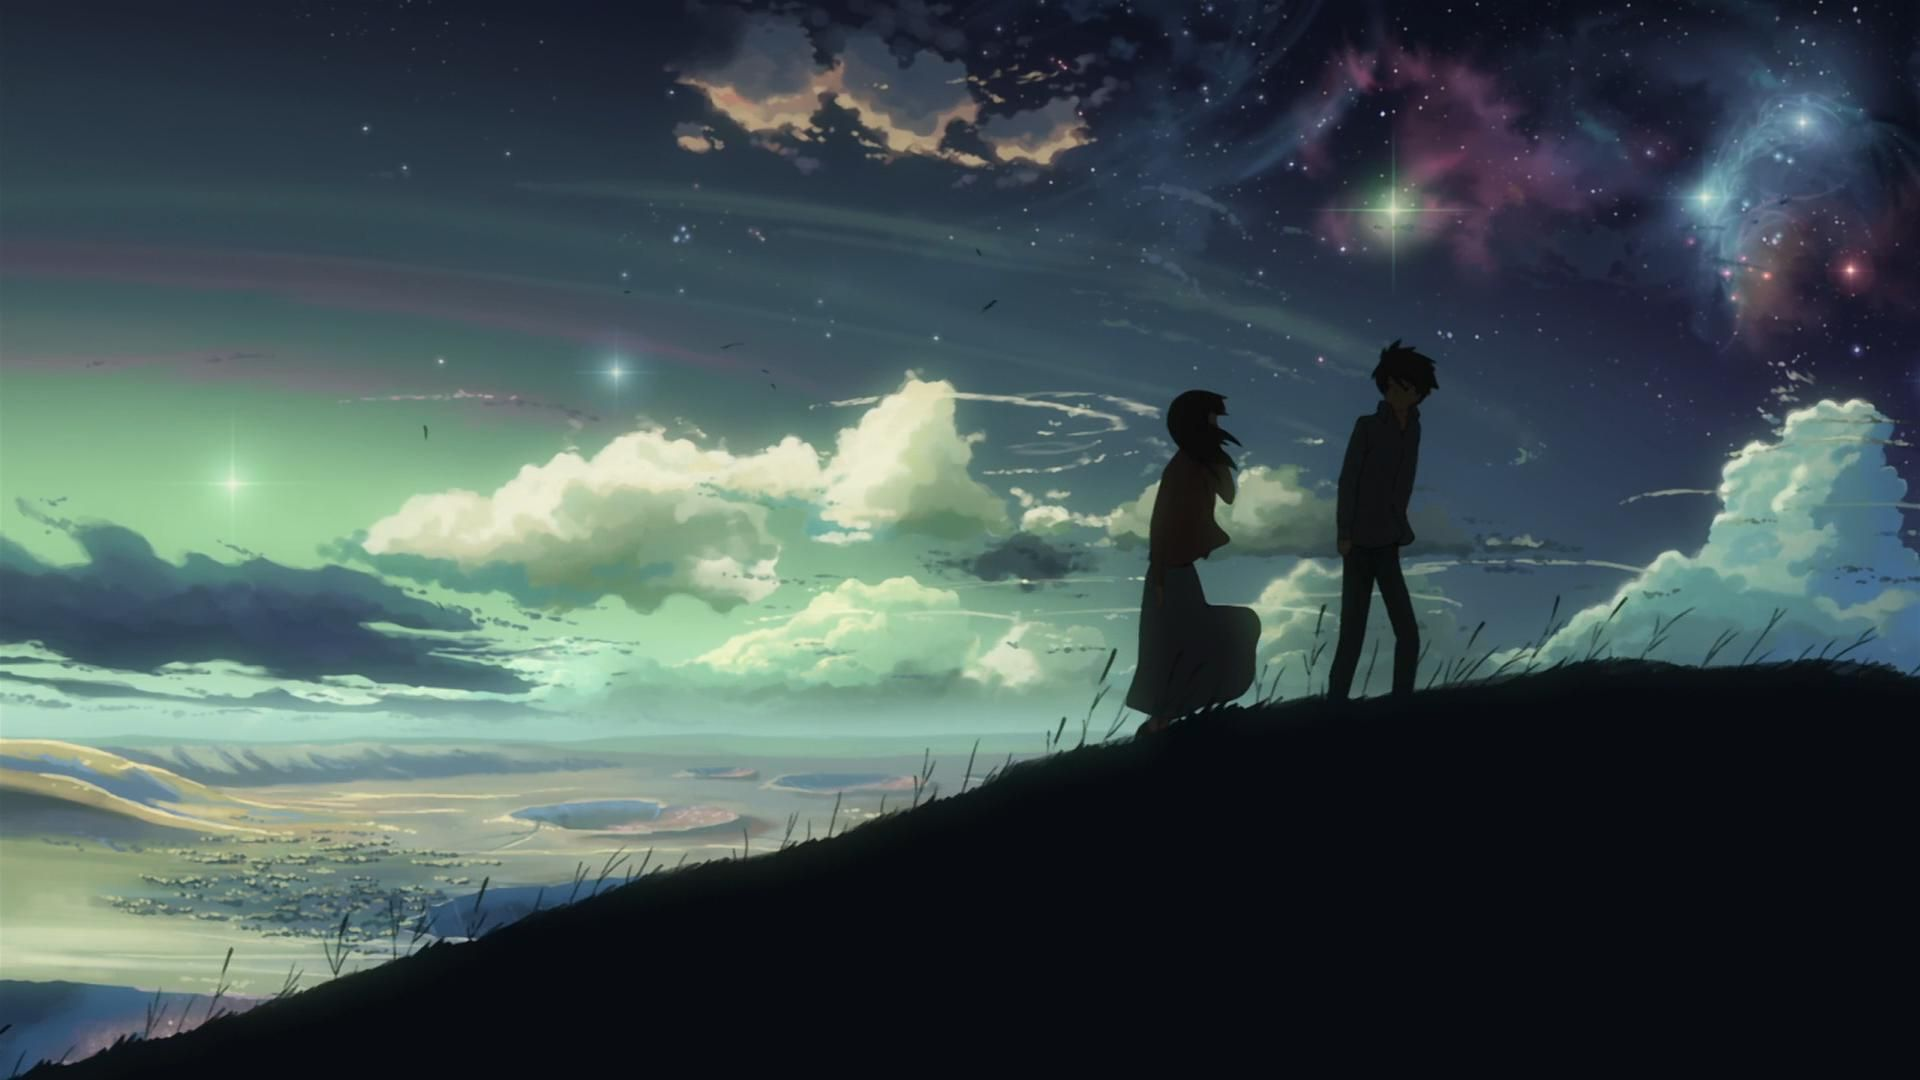 5 Centimeters Per Second [BD] Anime rùng rợn, Anime